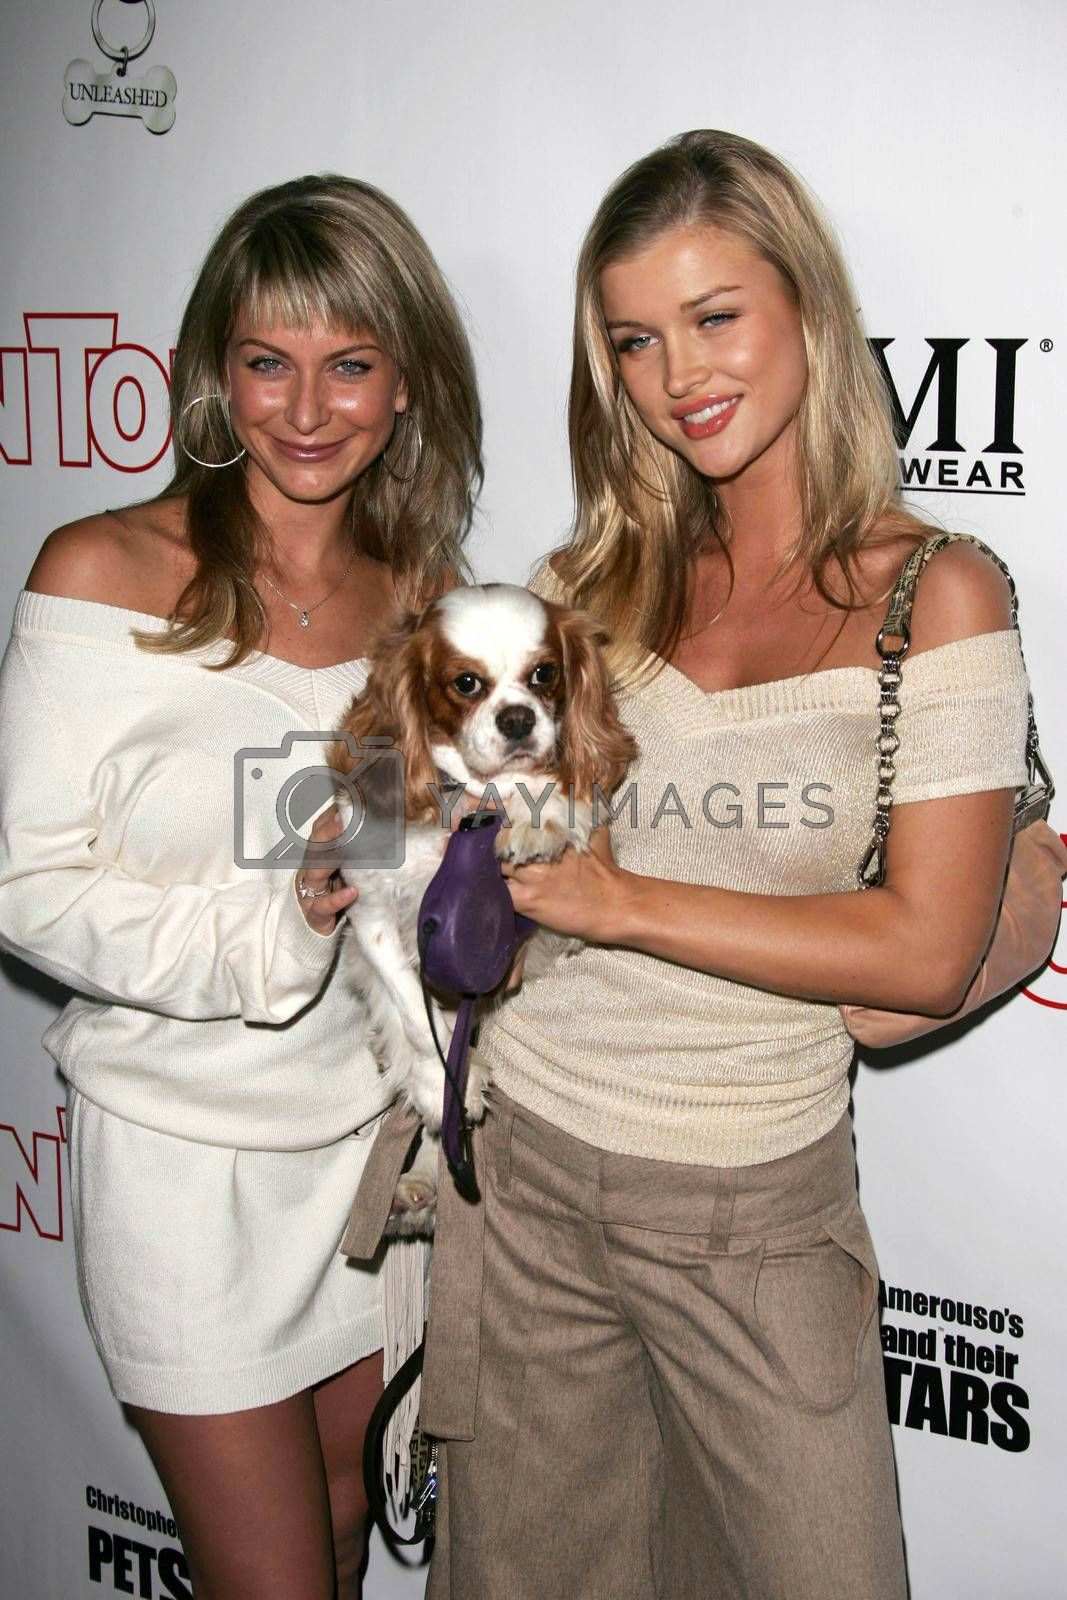 Joanna Krupa and friend at the In Touch Presents Pets And Their Stars Party, Cabana Club, Hollywood, CA 09-21-05